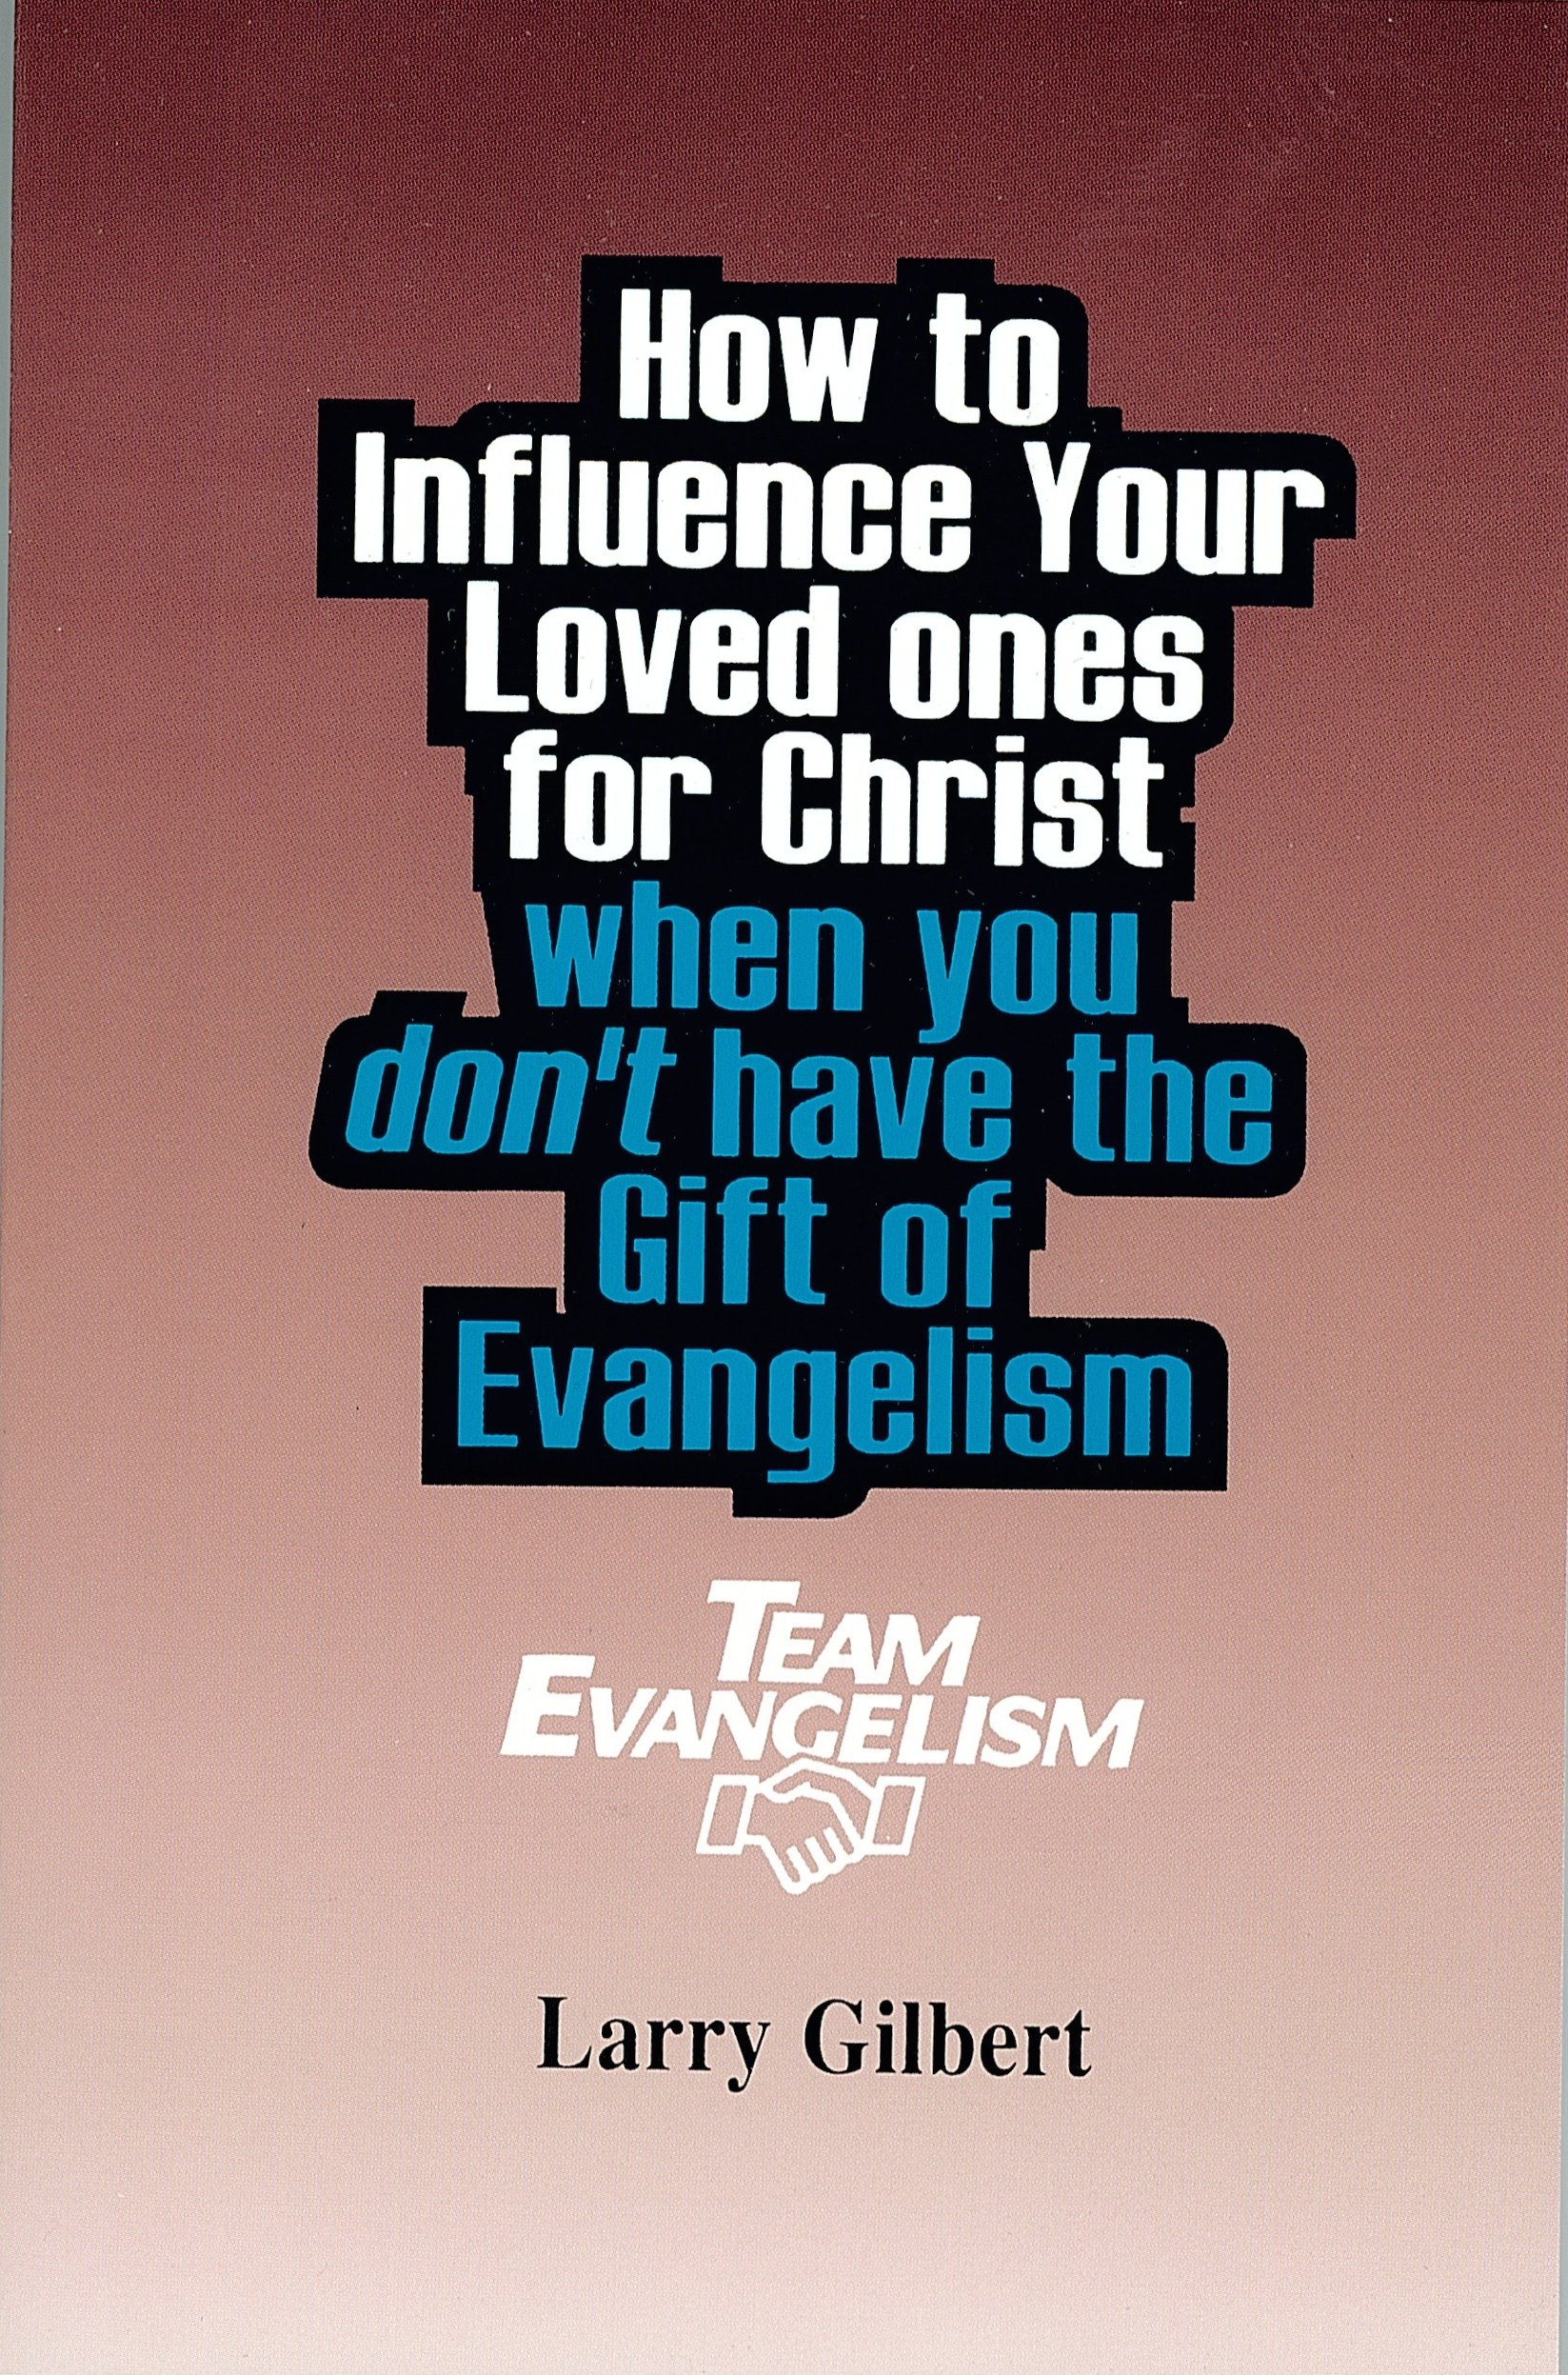 Forum on this topic: How to Teach Evangelism, how-to-teach-evangelism/